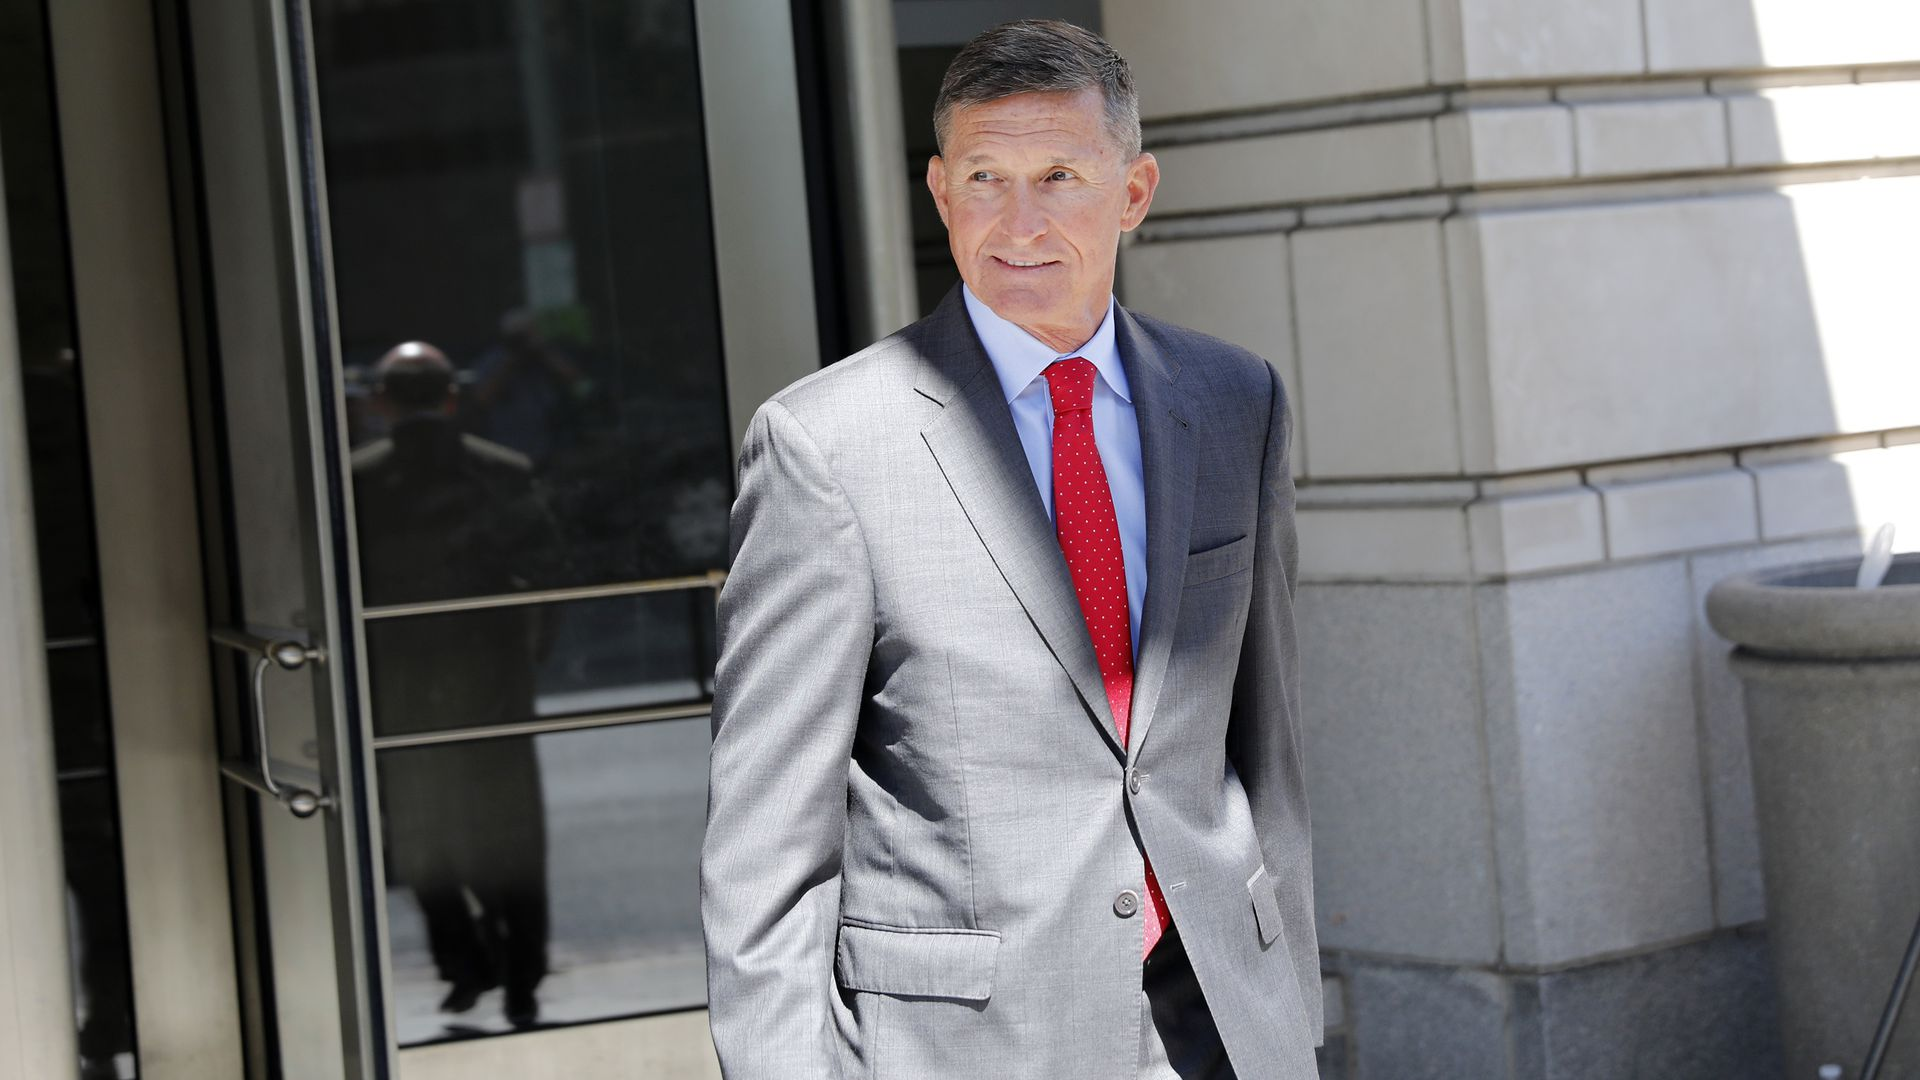 Michael Flynn leaves the courthouse